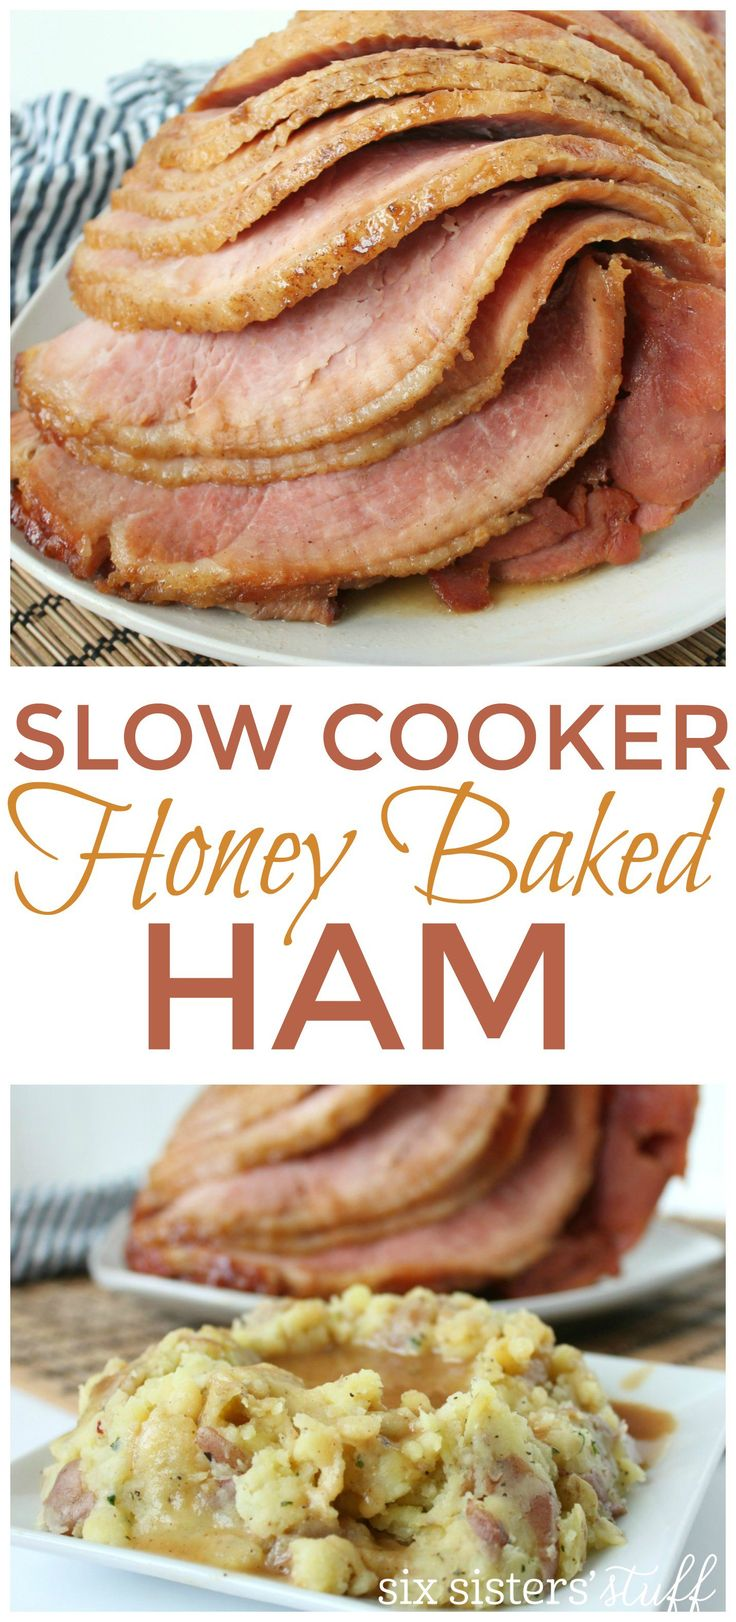 Forget the turkey! This slow cooker honey baked ham is a perfect Thanksgiving or Christmas dinner idea.